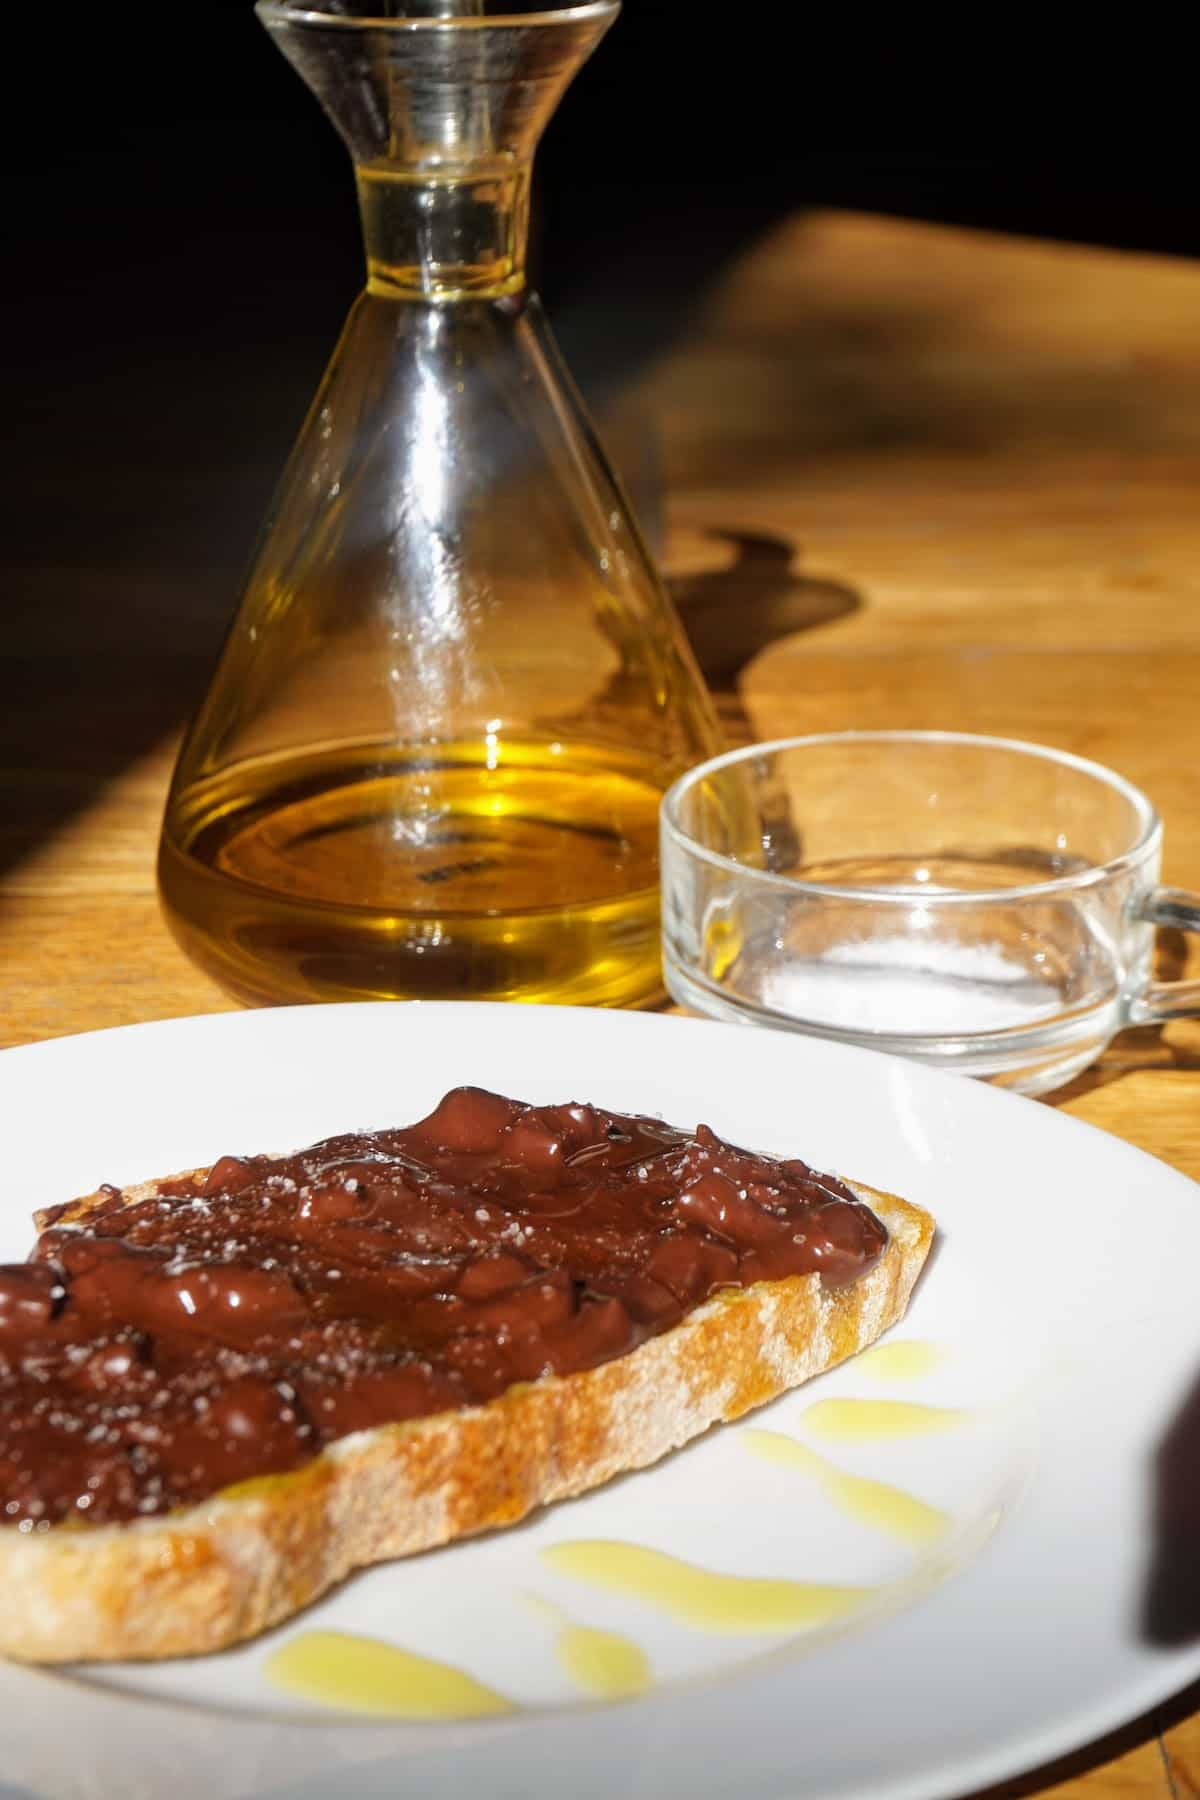 Slice of toasted bread topped with chocolate and olive oil, with containers of olive oil and salt behind the plate.